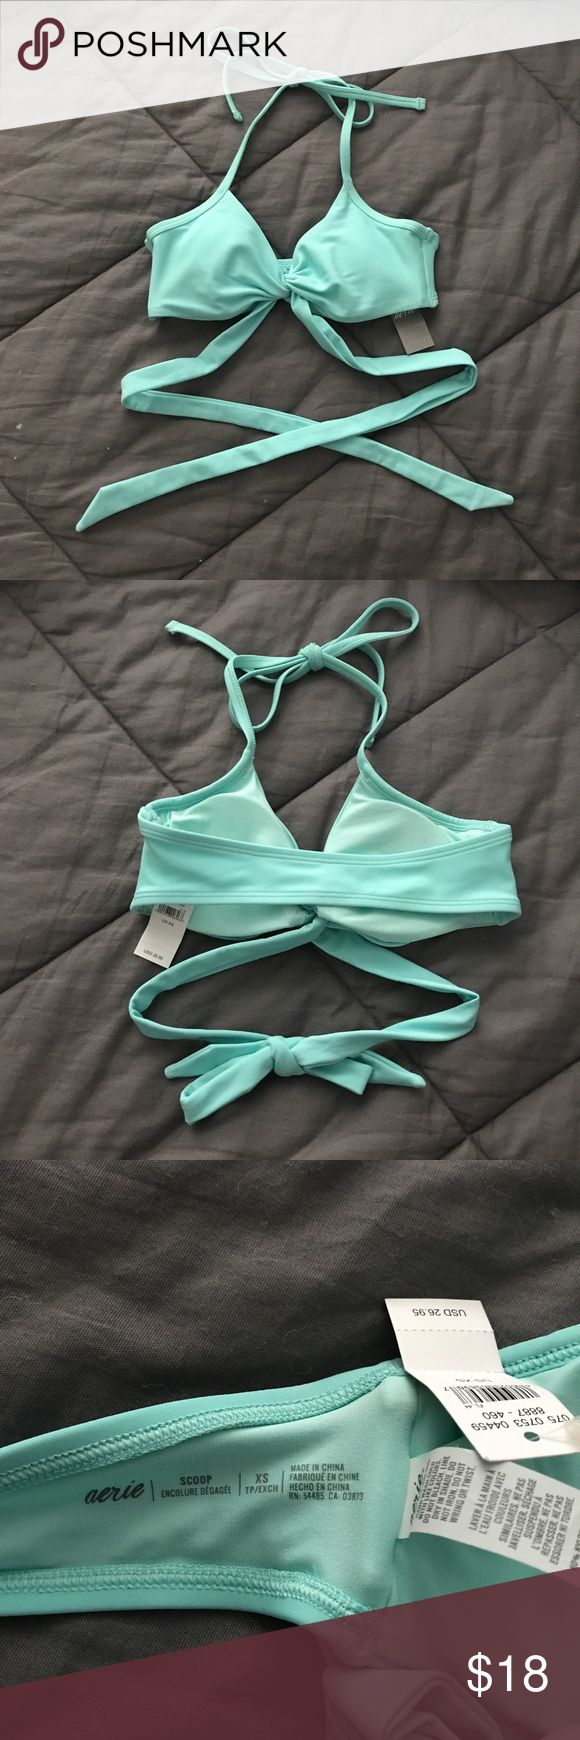 Aerie wrap around / cross body bikini In a light blue/mint color, similar to a seafoam color or Tiffany Blue! Super cute swimsuit top that has straps that wrap around and tie in the back! Size XS, just too small for me. NWT, never been worn! aerie Swim Bikinis